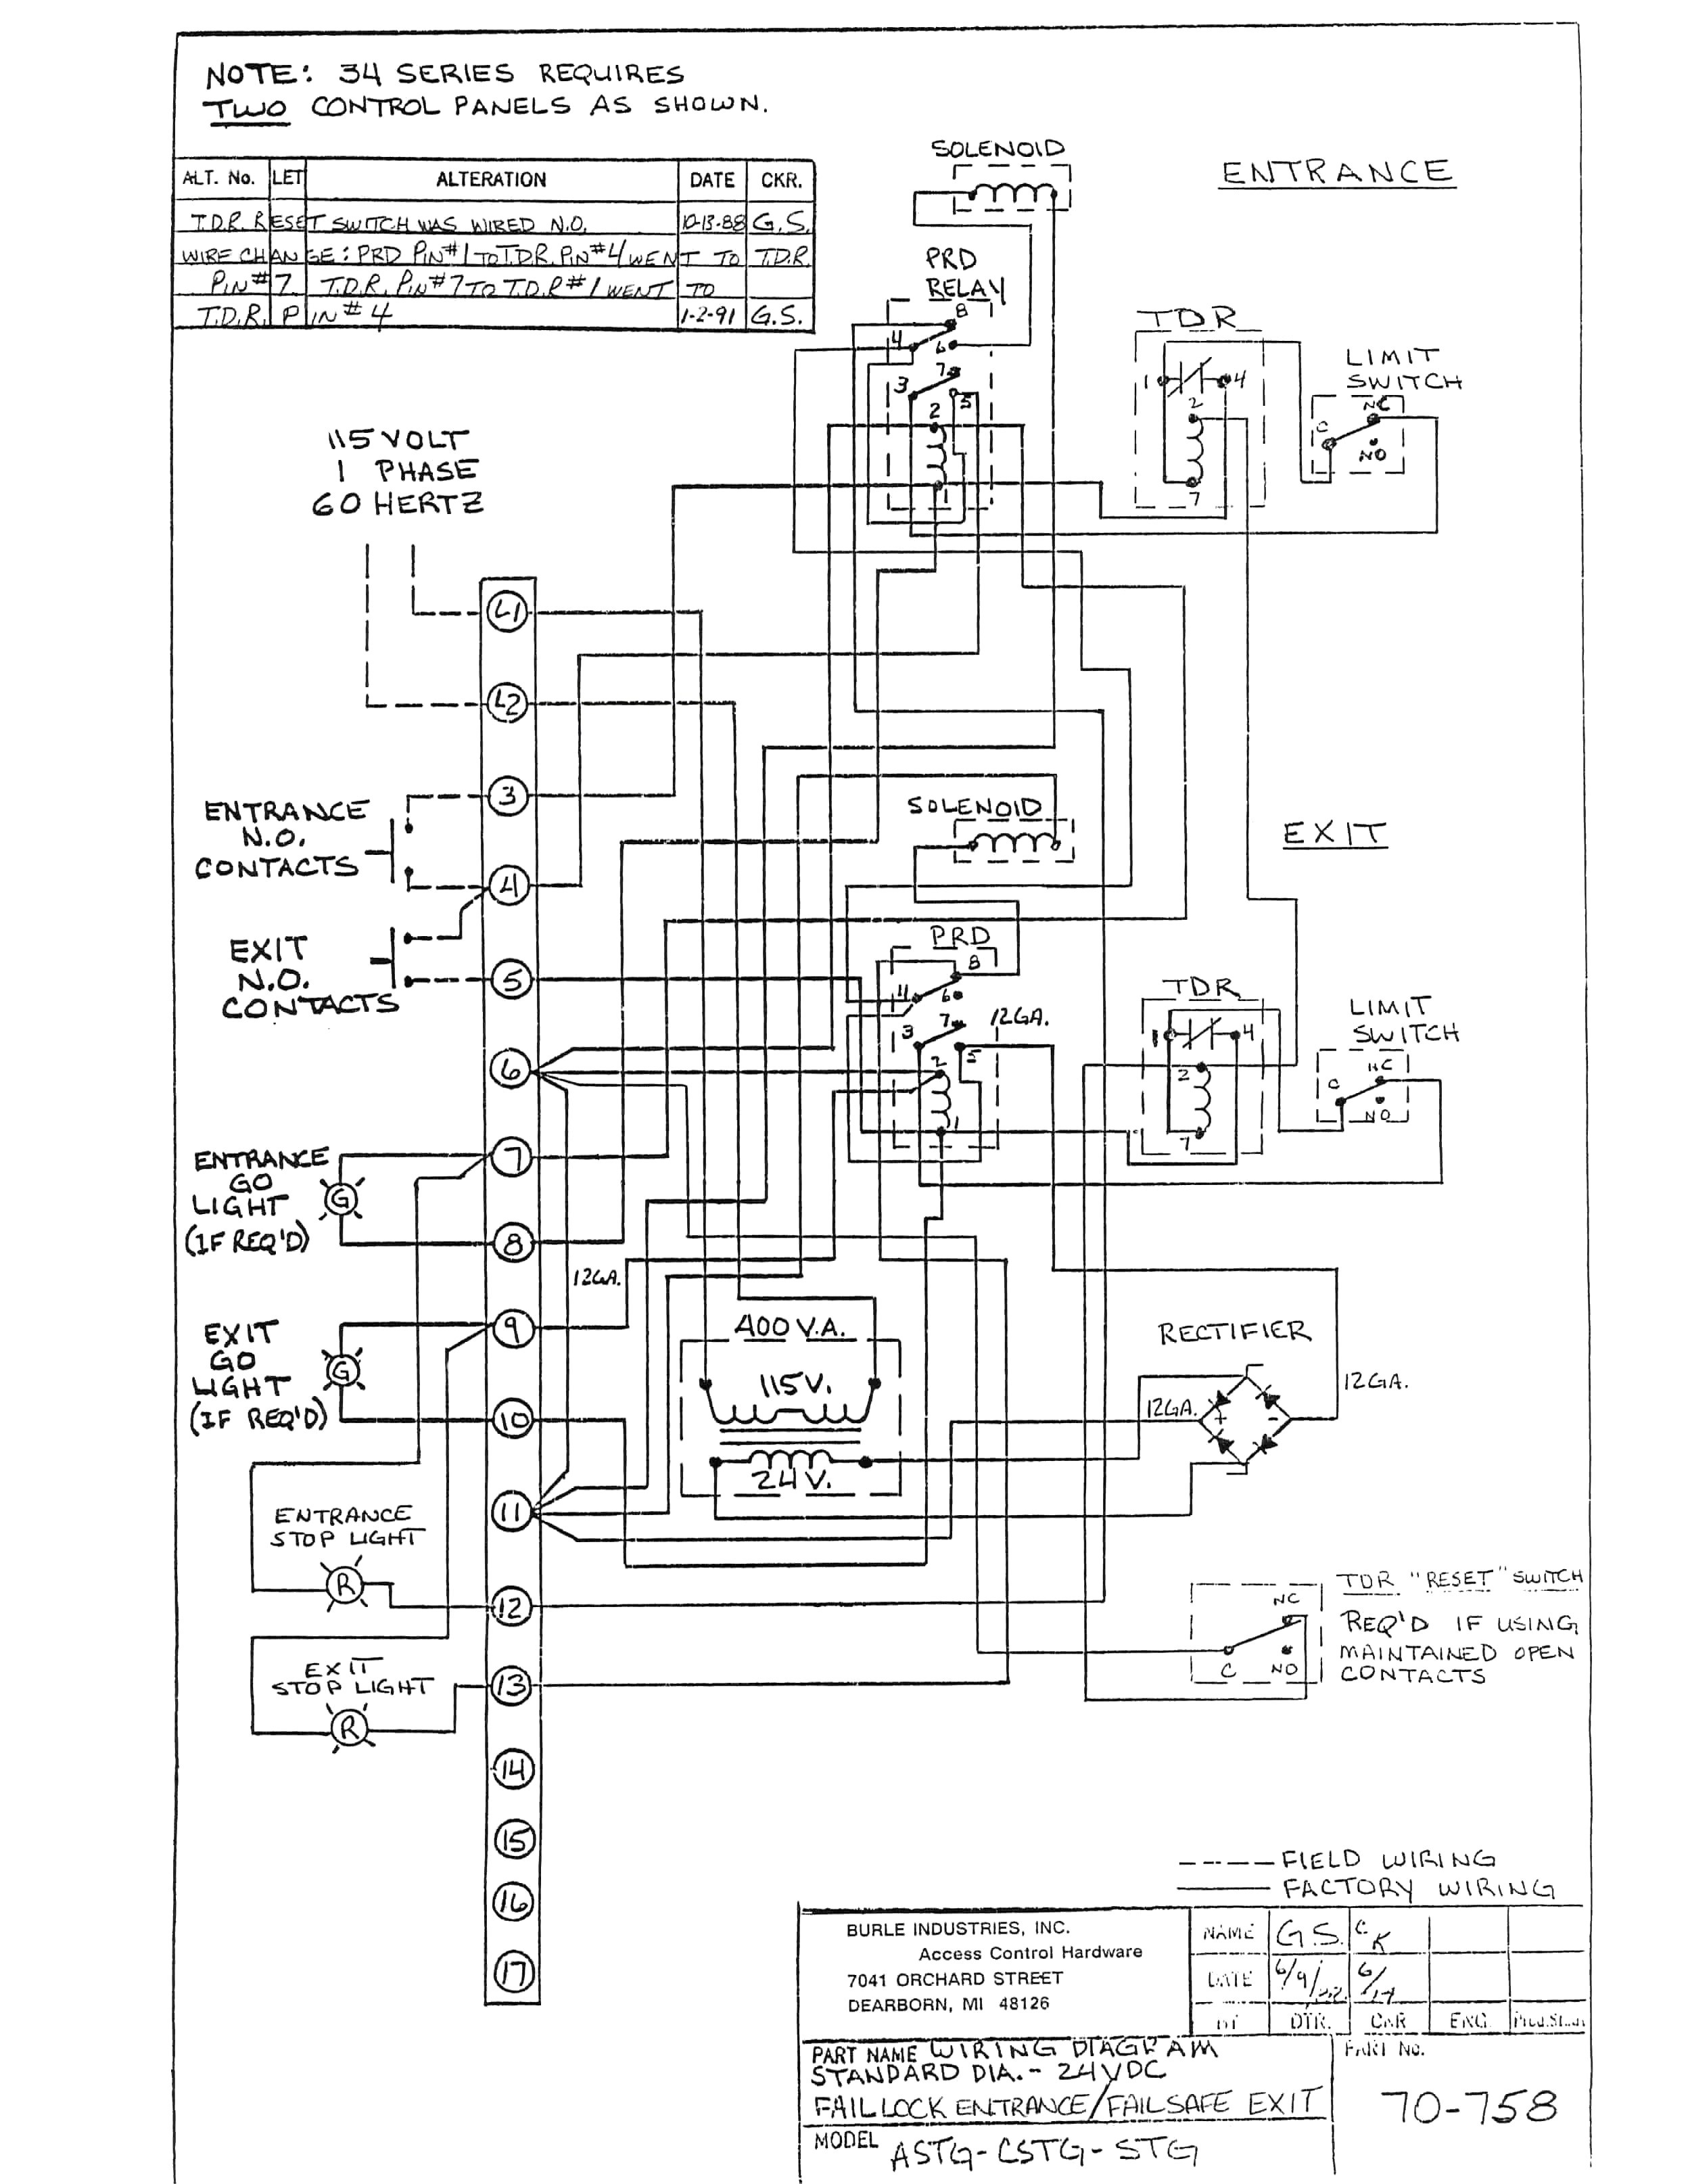 Trane Rooftop Hvac Wiring Diagrams | Manual E-Books - Trane Rooftop Unit Wiring Diagram